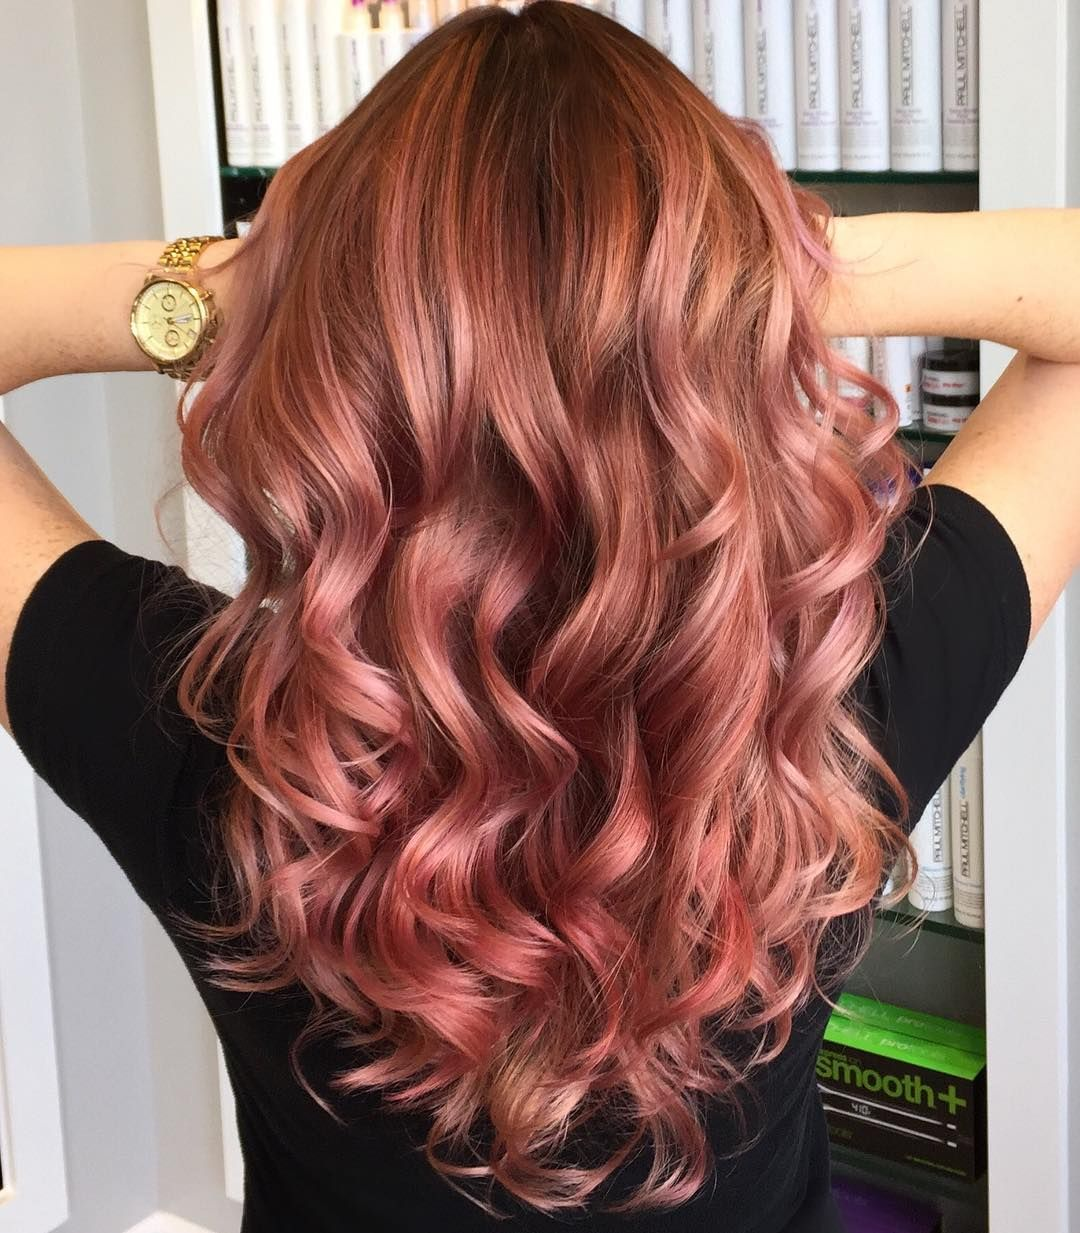 20 Brilliant Rose Gold Hair Color Ideas Hair Color Rose Gold